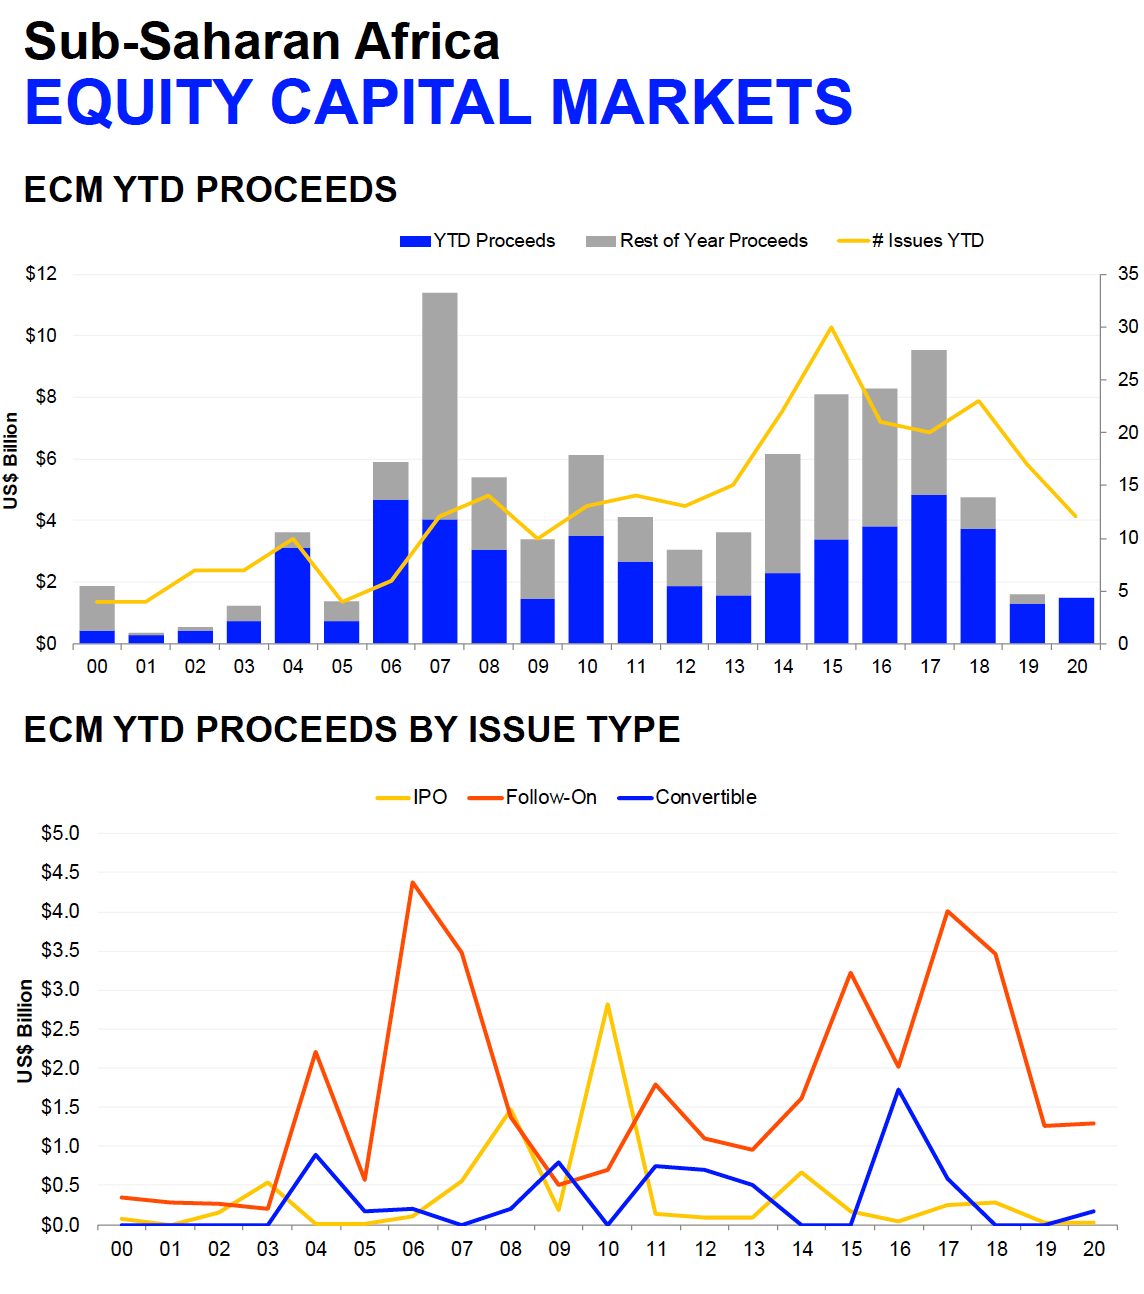 Africa's equity capital market